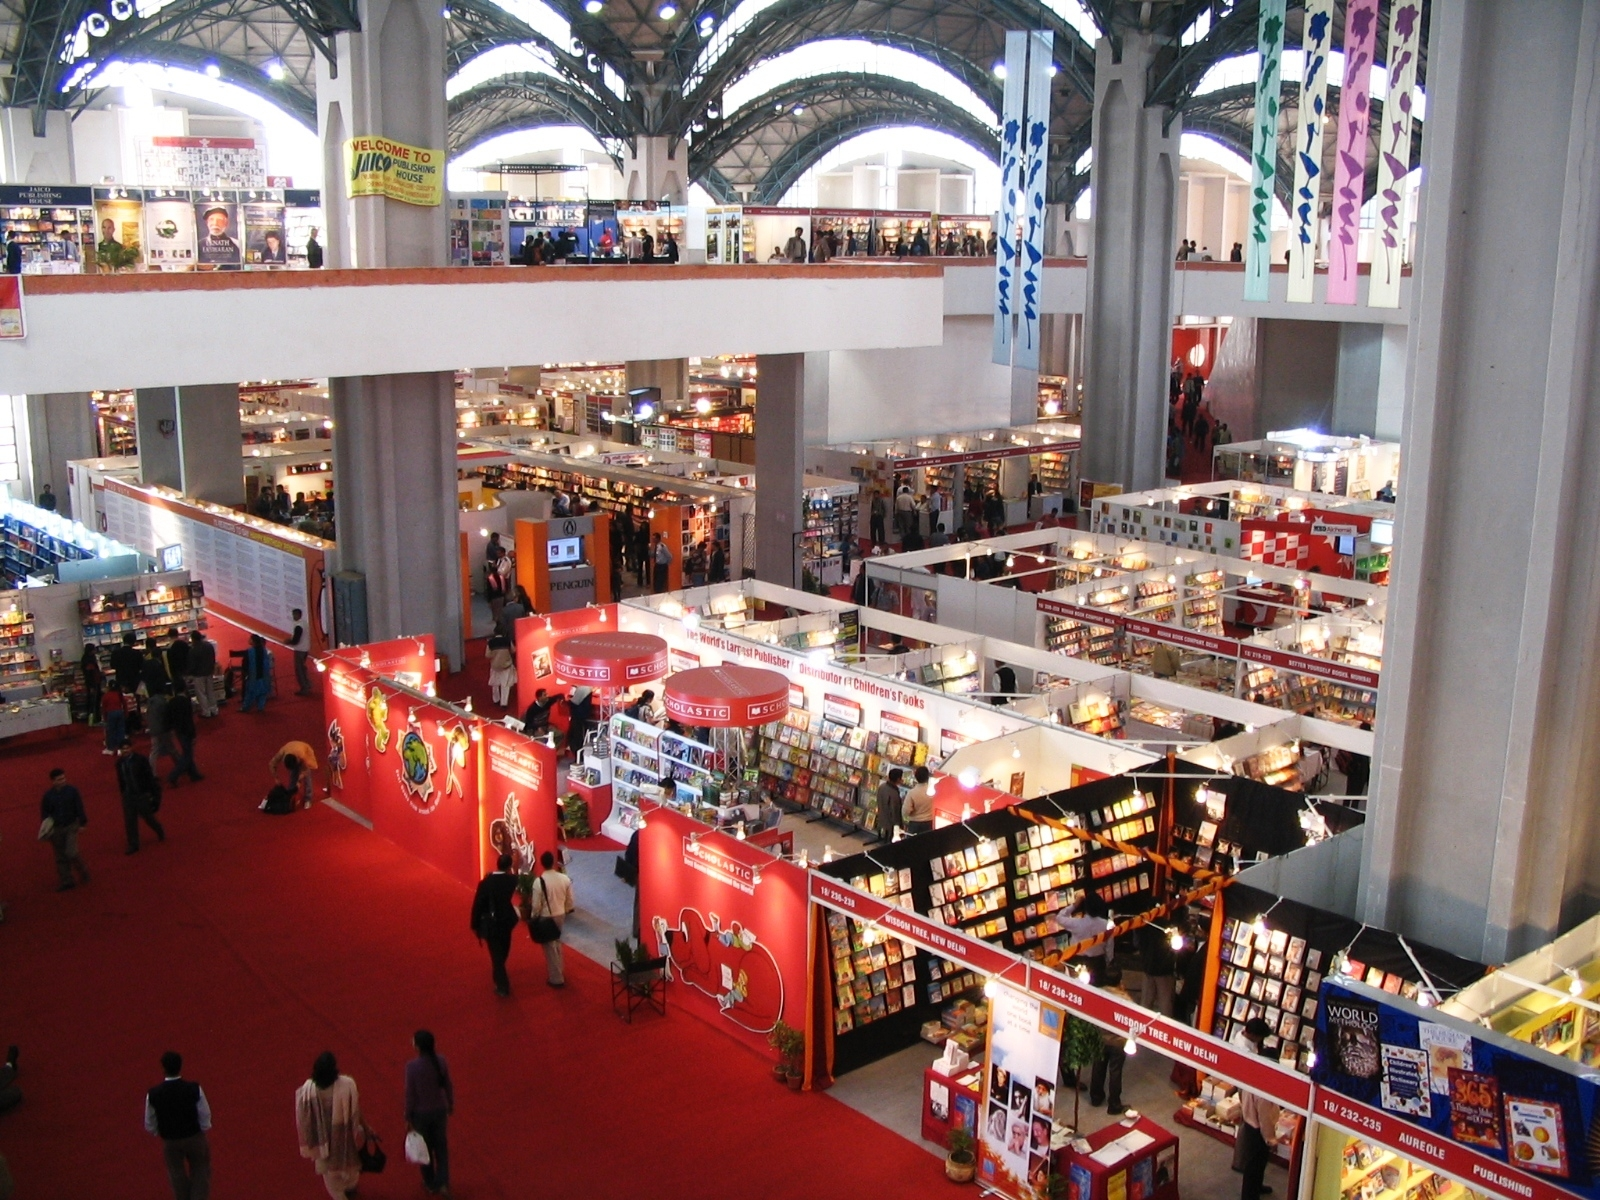 Delhi book lovers get a blissful tour in World Book Fair 2016; Irani calls catalytic role that books play